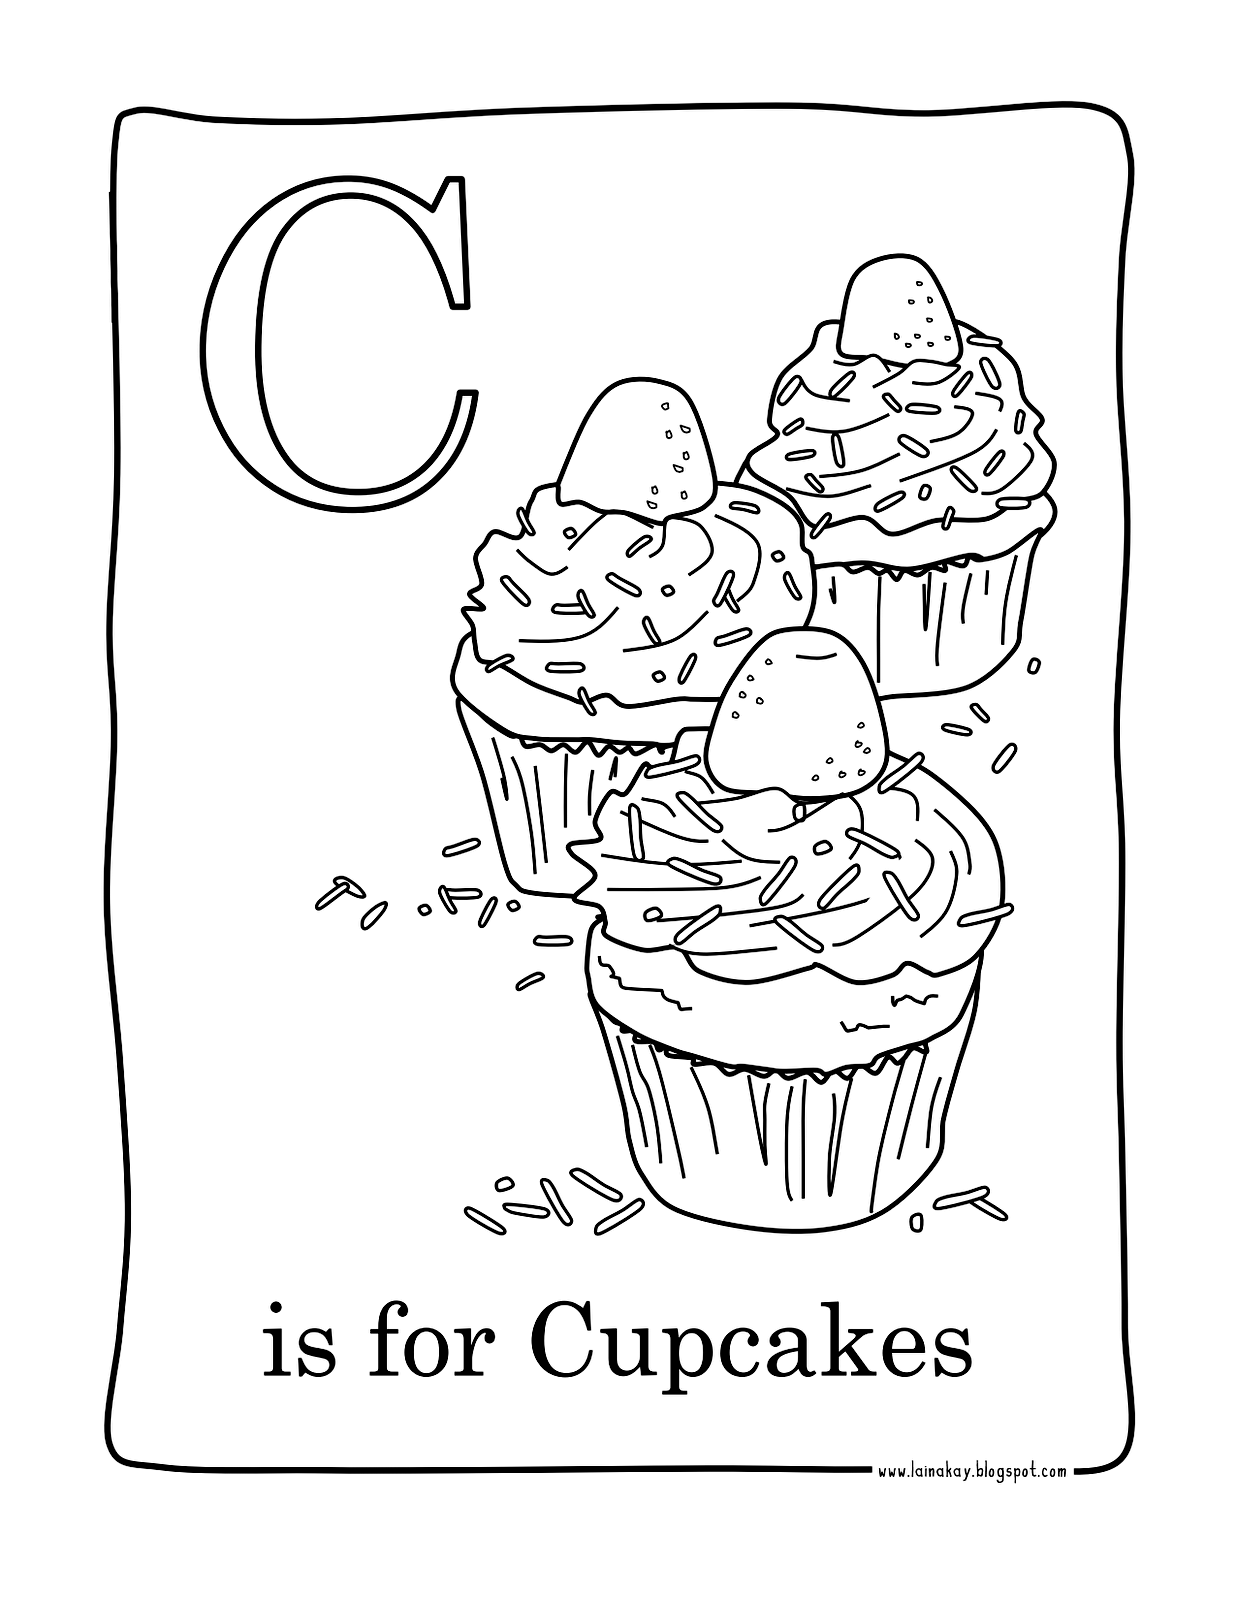 C For Cupcakes